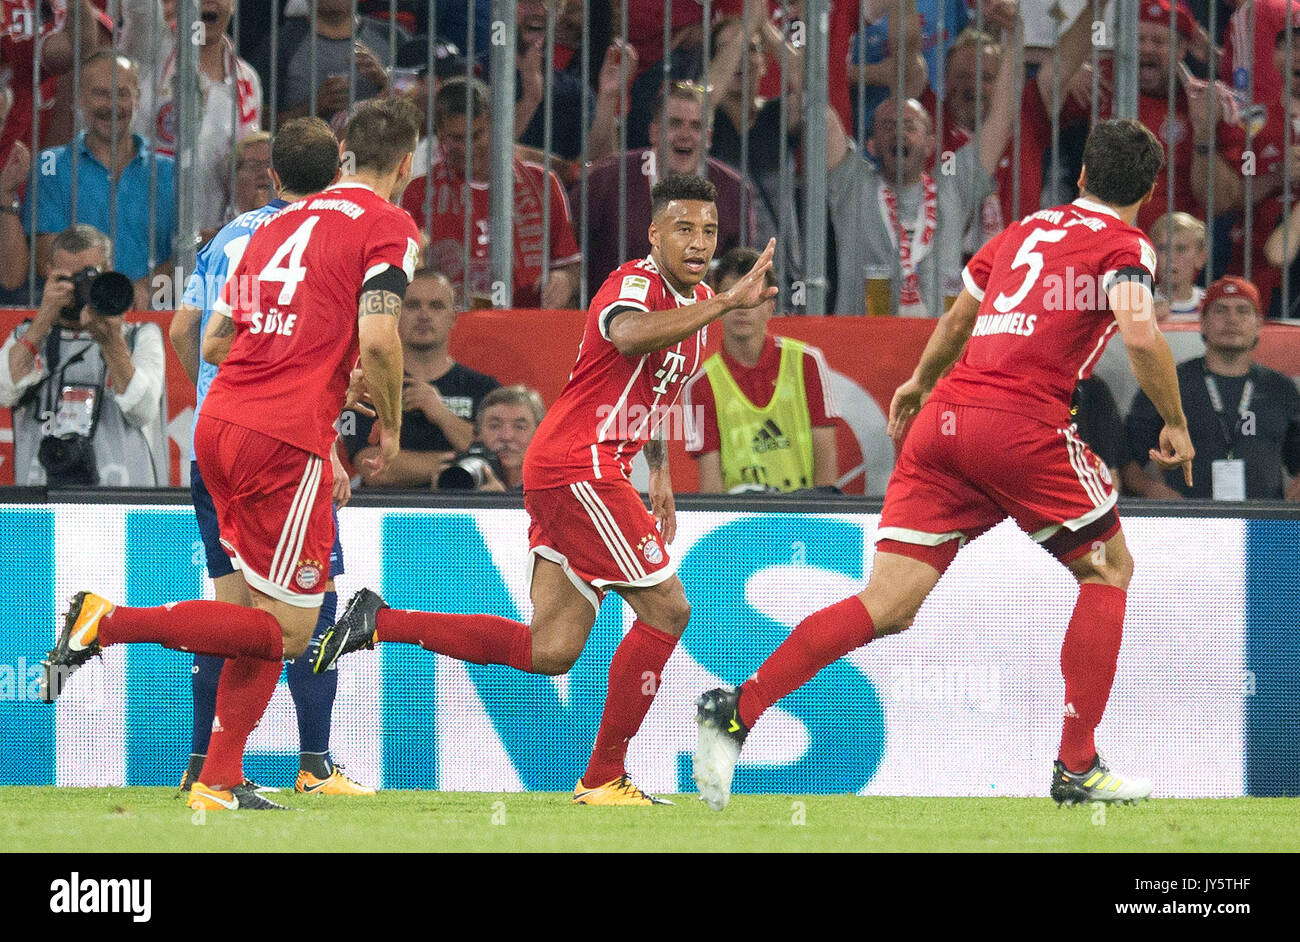 Deutschland. 18th Aug, 2017. Torjubel zum 2-0 durch Corentin TOLISSO (FC Bayern)/Mitte. GES/ Fussball/ 1. Bundesliga: FC Bayern Munich - Bayer 04 Leverkusen, 18.08.2017 -- Football/ Soccer 1st. German Bundesliga Division: Bavaria Munich vs Bayer 04 Leverkusen, Munich, August 18, 2017 | Verwendung weltweit Credit: dpa/Alamy Live News - Stock Image